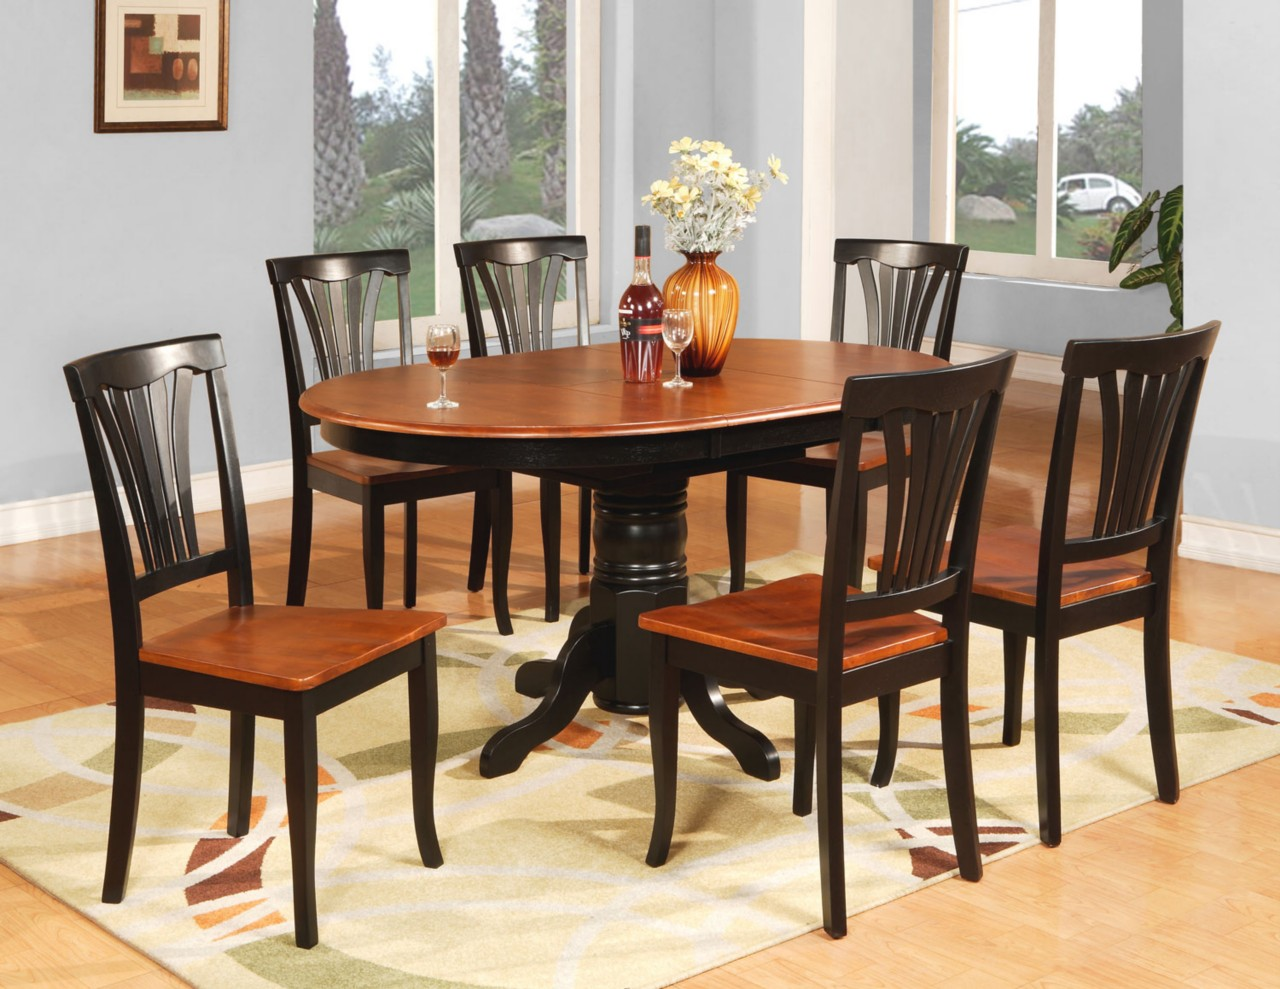 7 pc oval dinette kitchen dining room table 6 chairs ebay for Kitchen dining room furniture